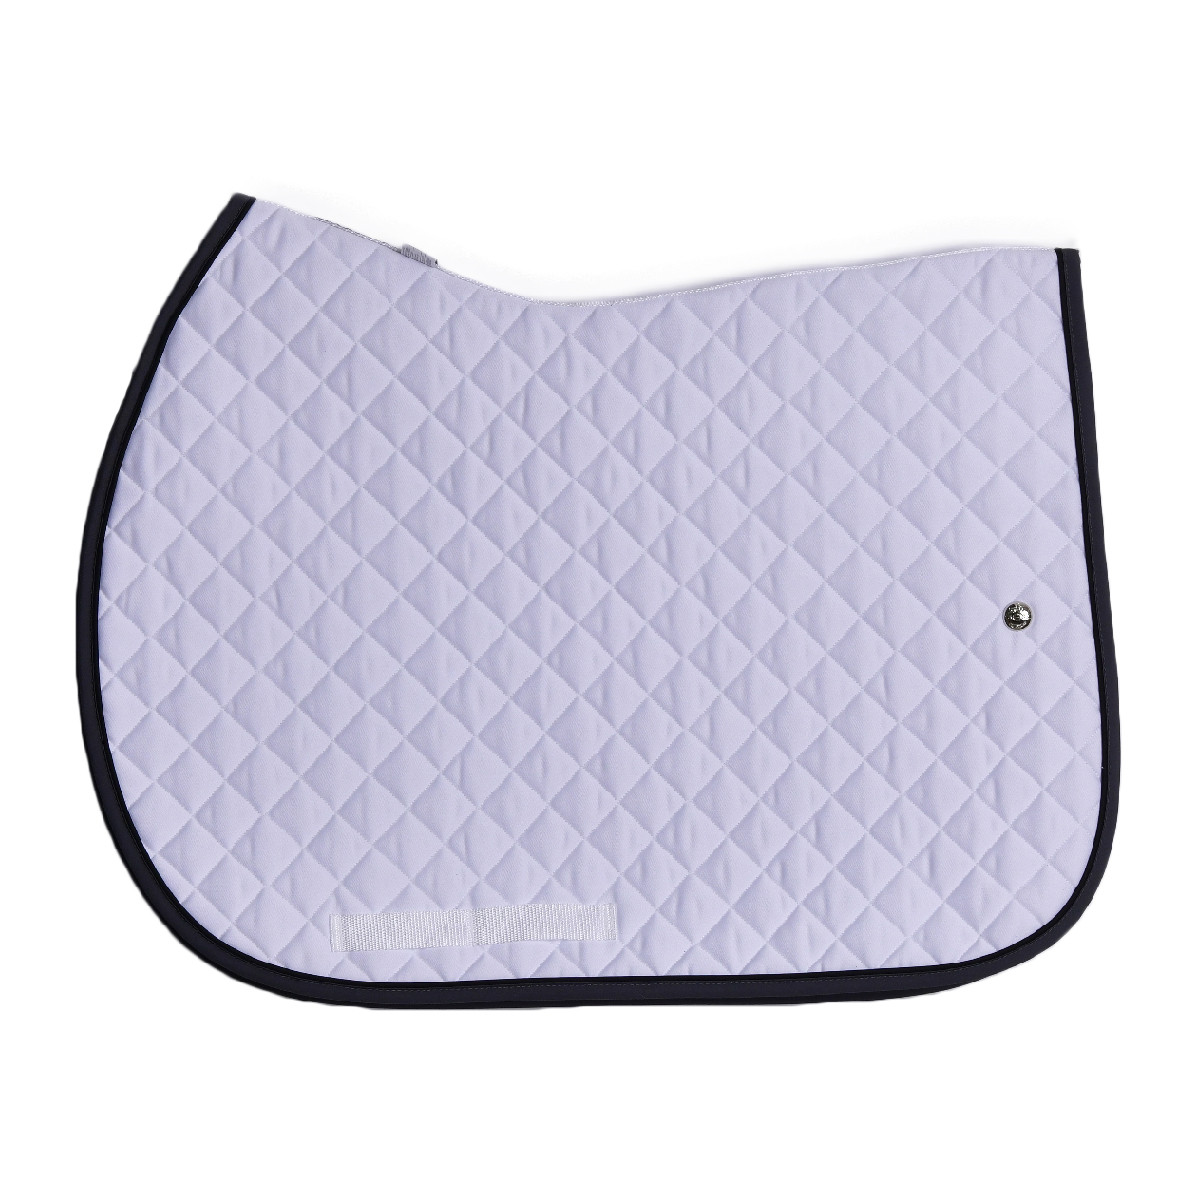 Ogilvy Jump Profile Pad - White / Black / Dark Grey